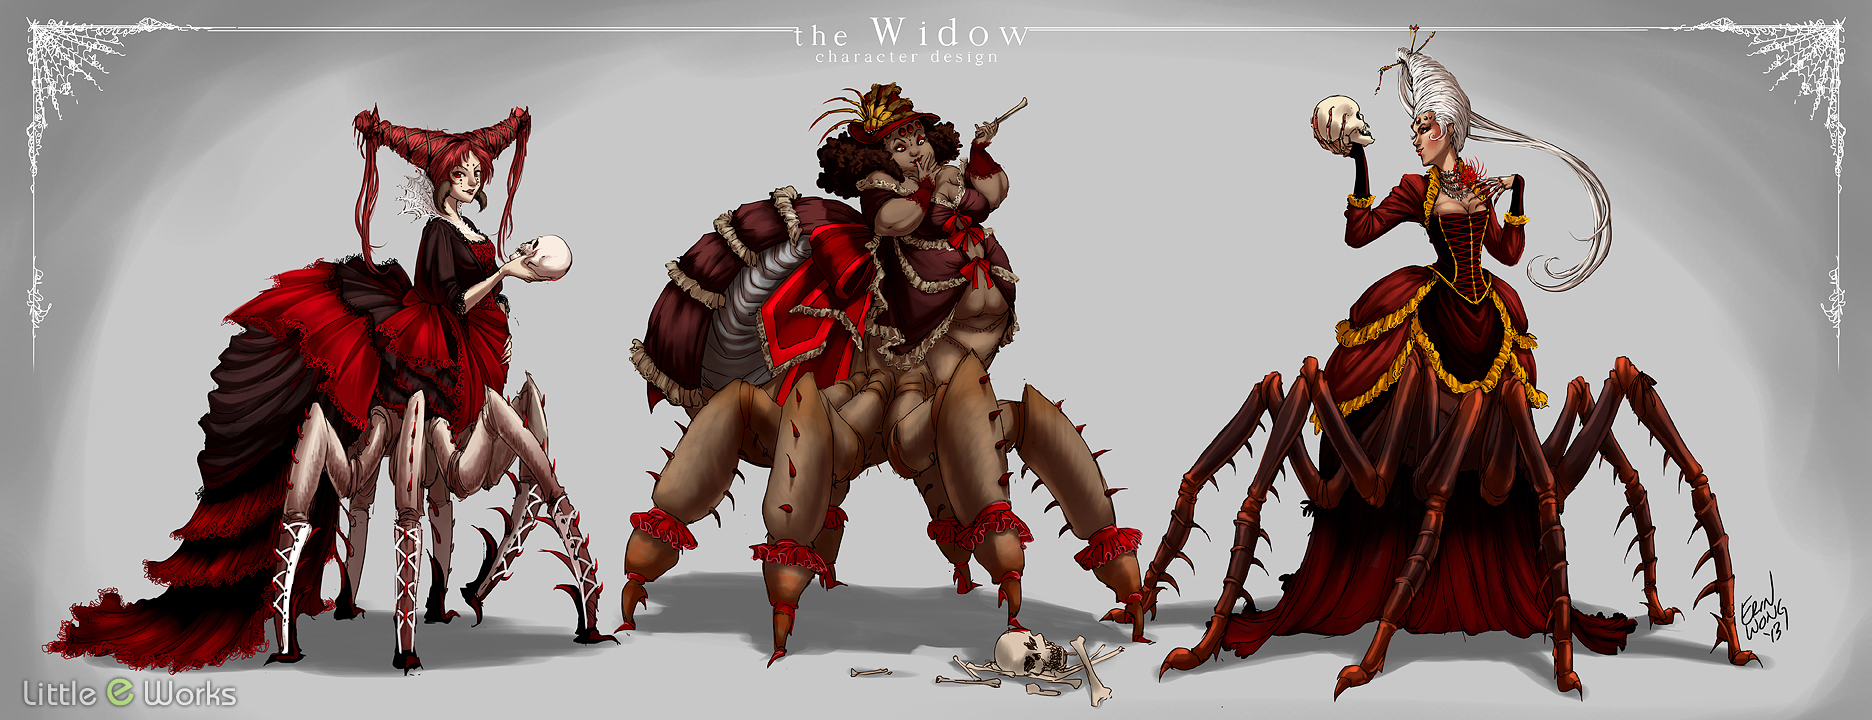 the widow2.jpg